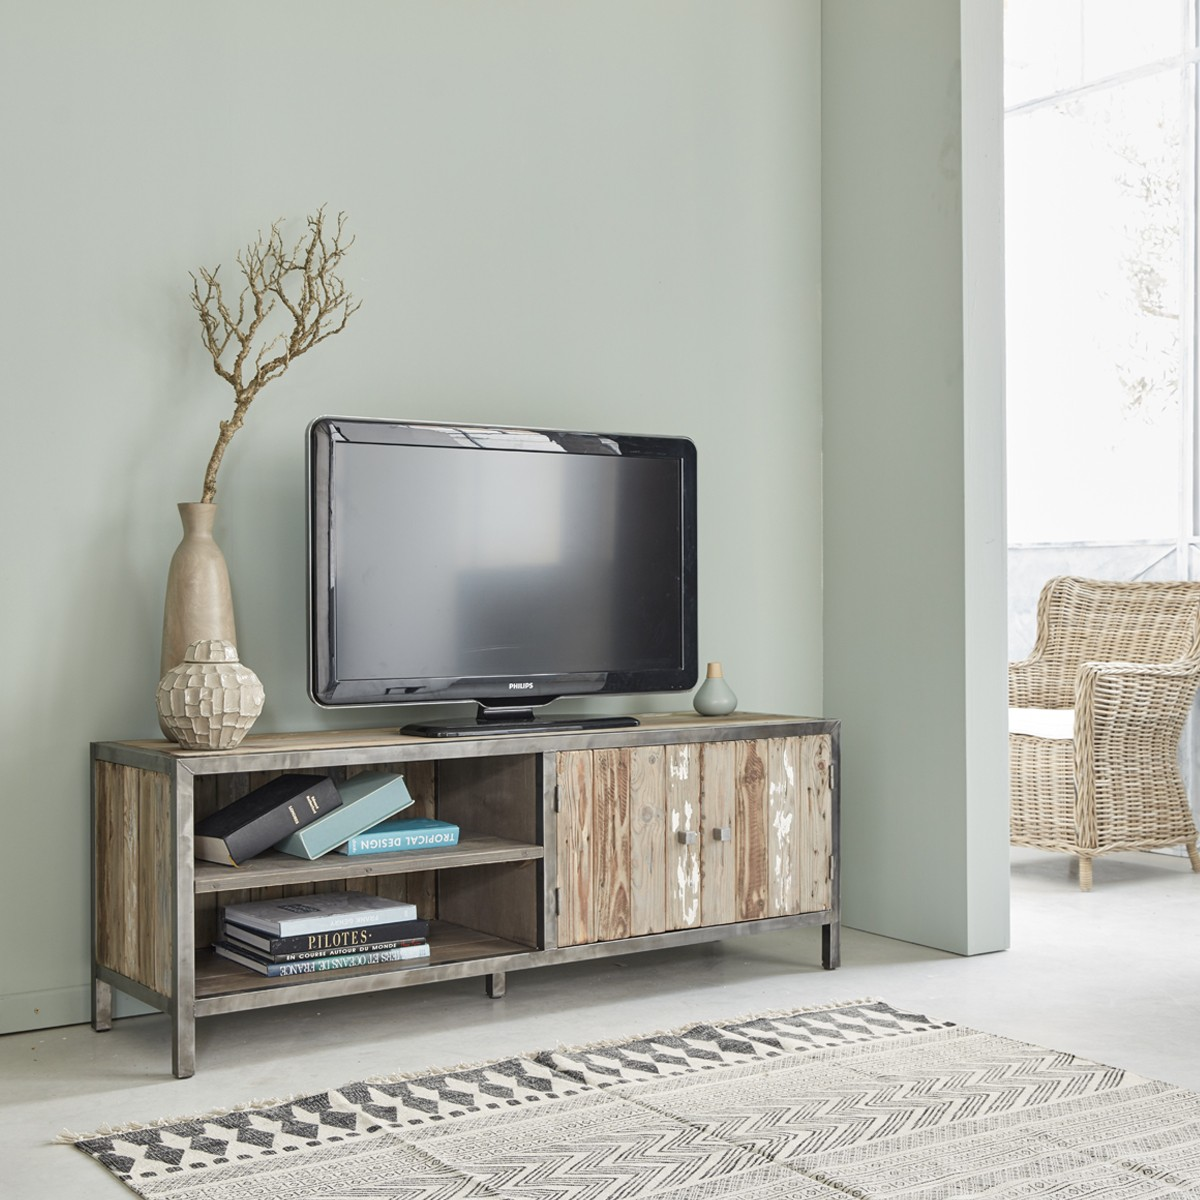 meuble tv en bois de pin recycl et m tal 150 vintage bois dessus bois dessous. Black Bedroom Furniture Sets. Home Design Ideas